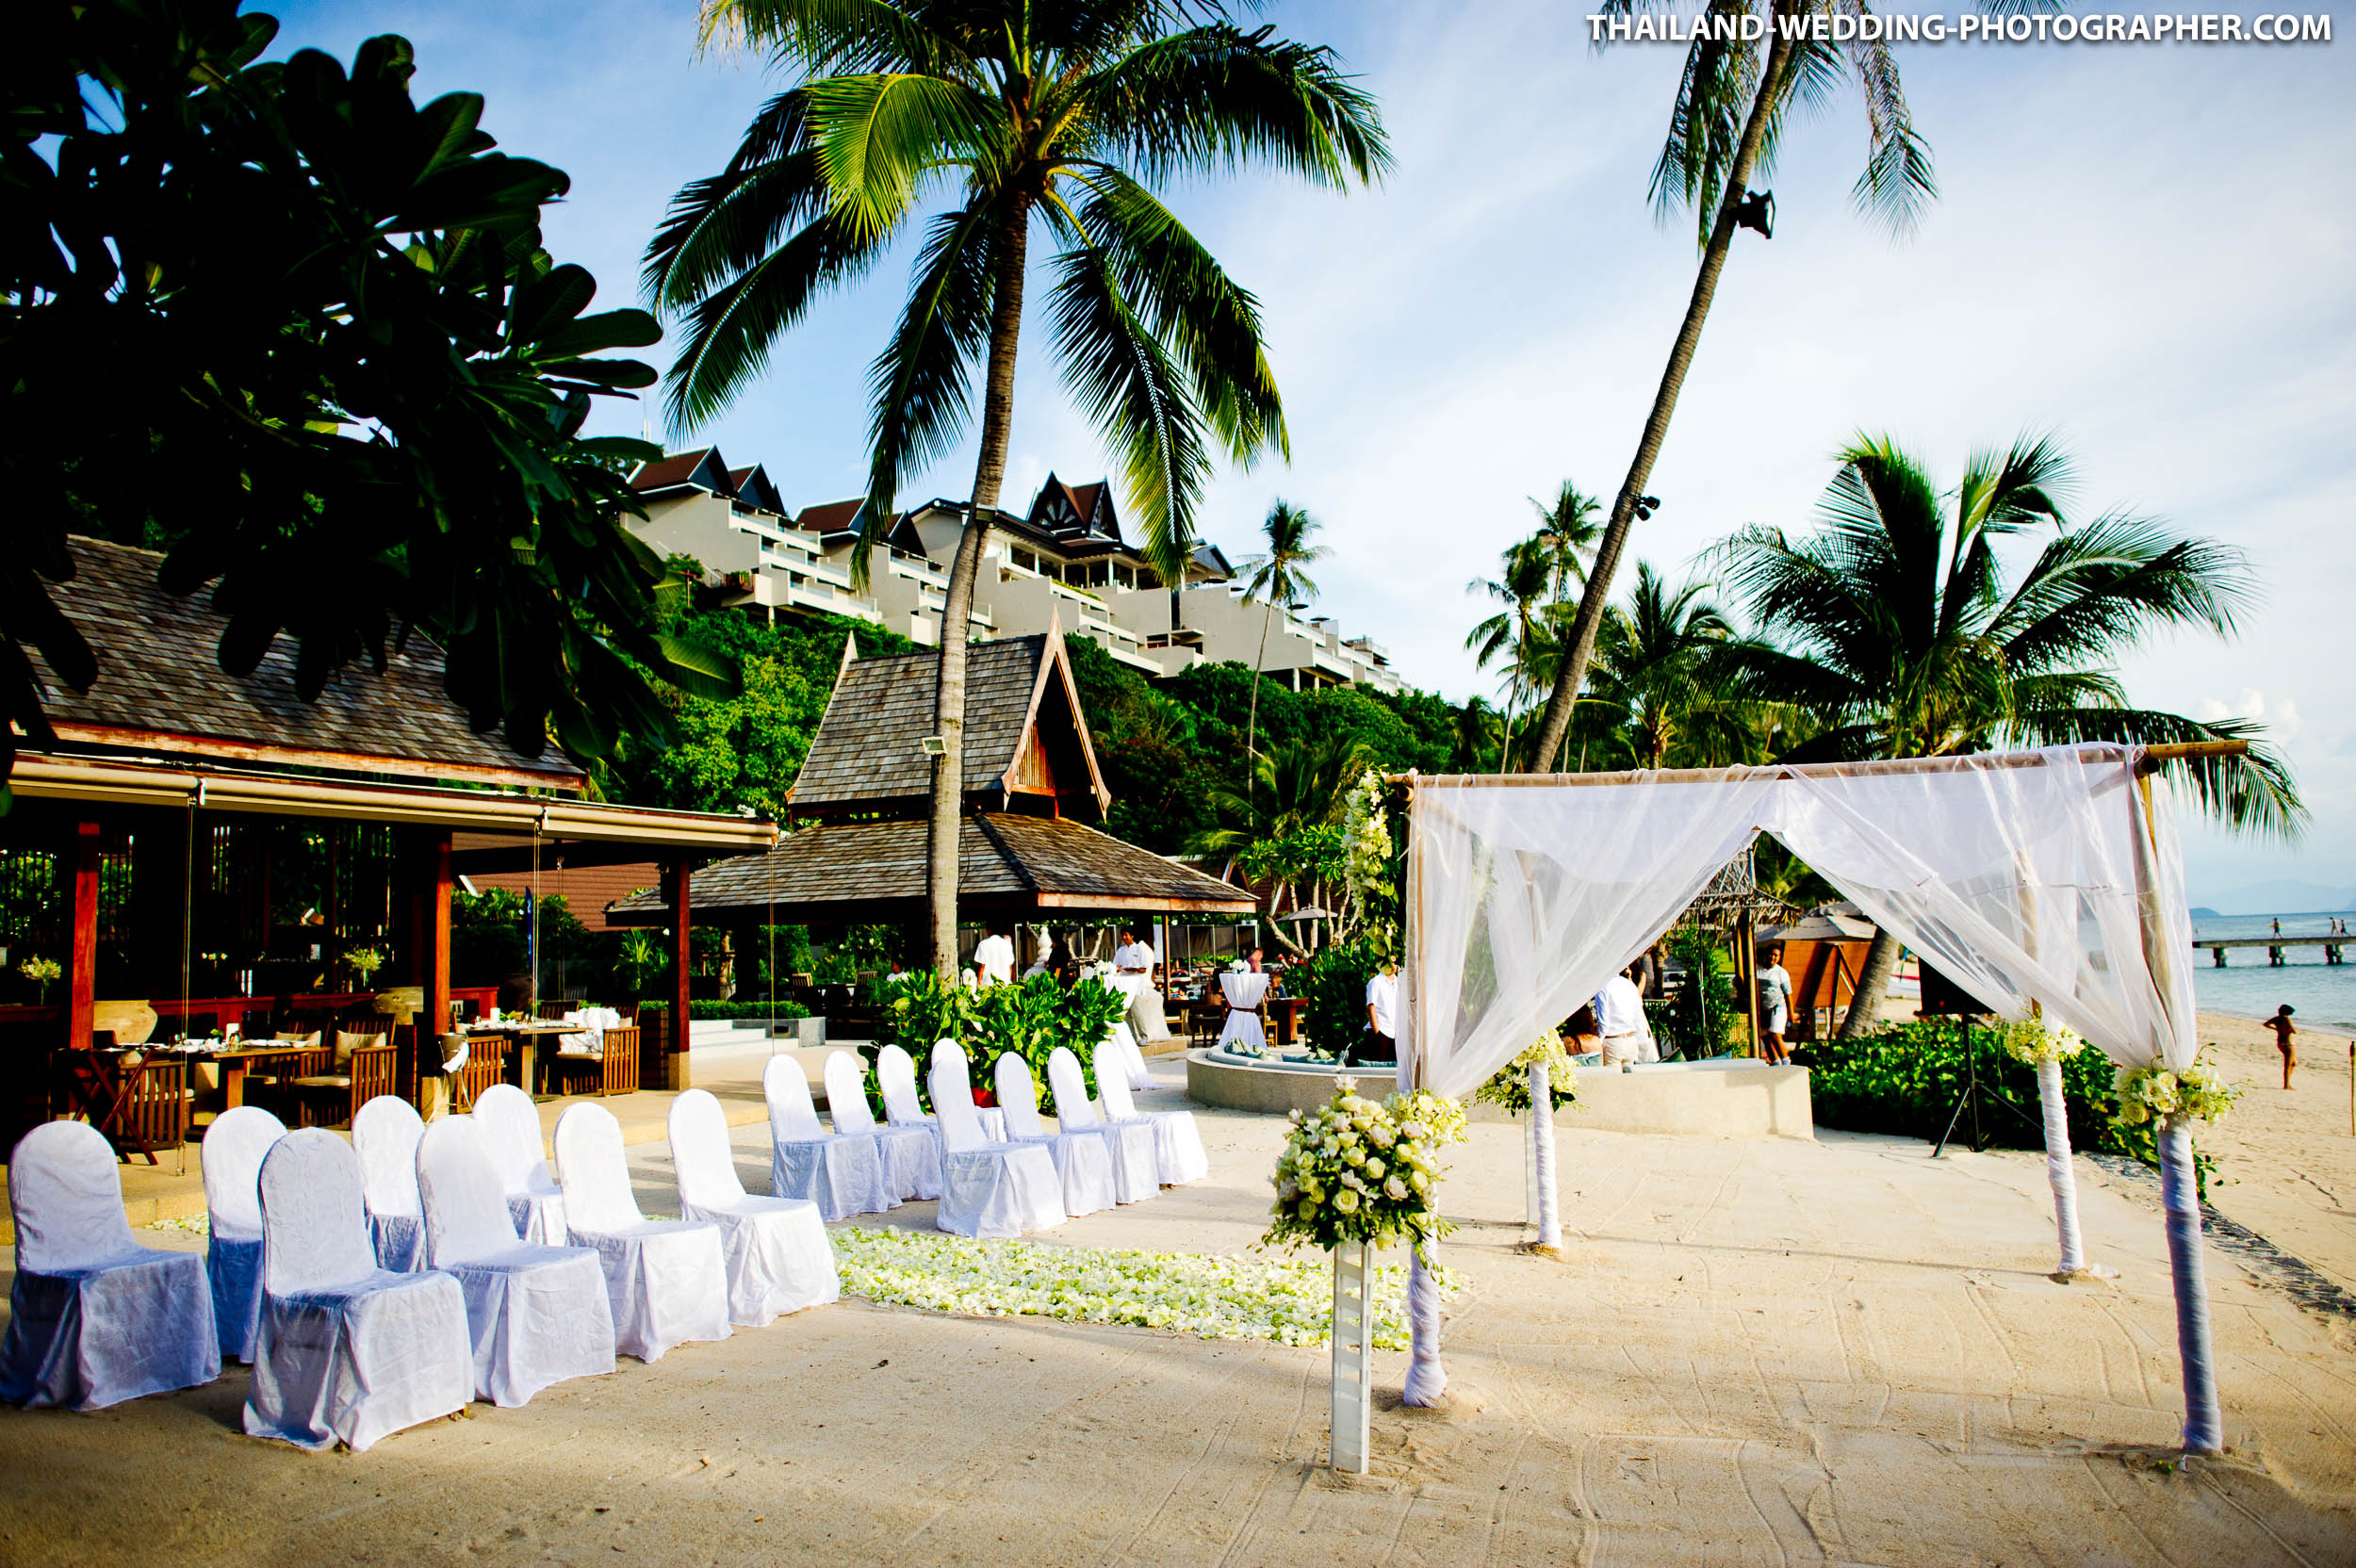 InterContinental Samui Baan Taling Ngam Resort Thailand Wedding Photography